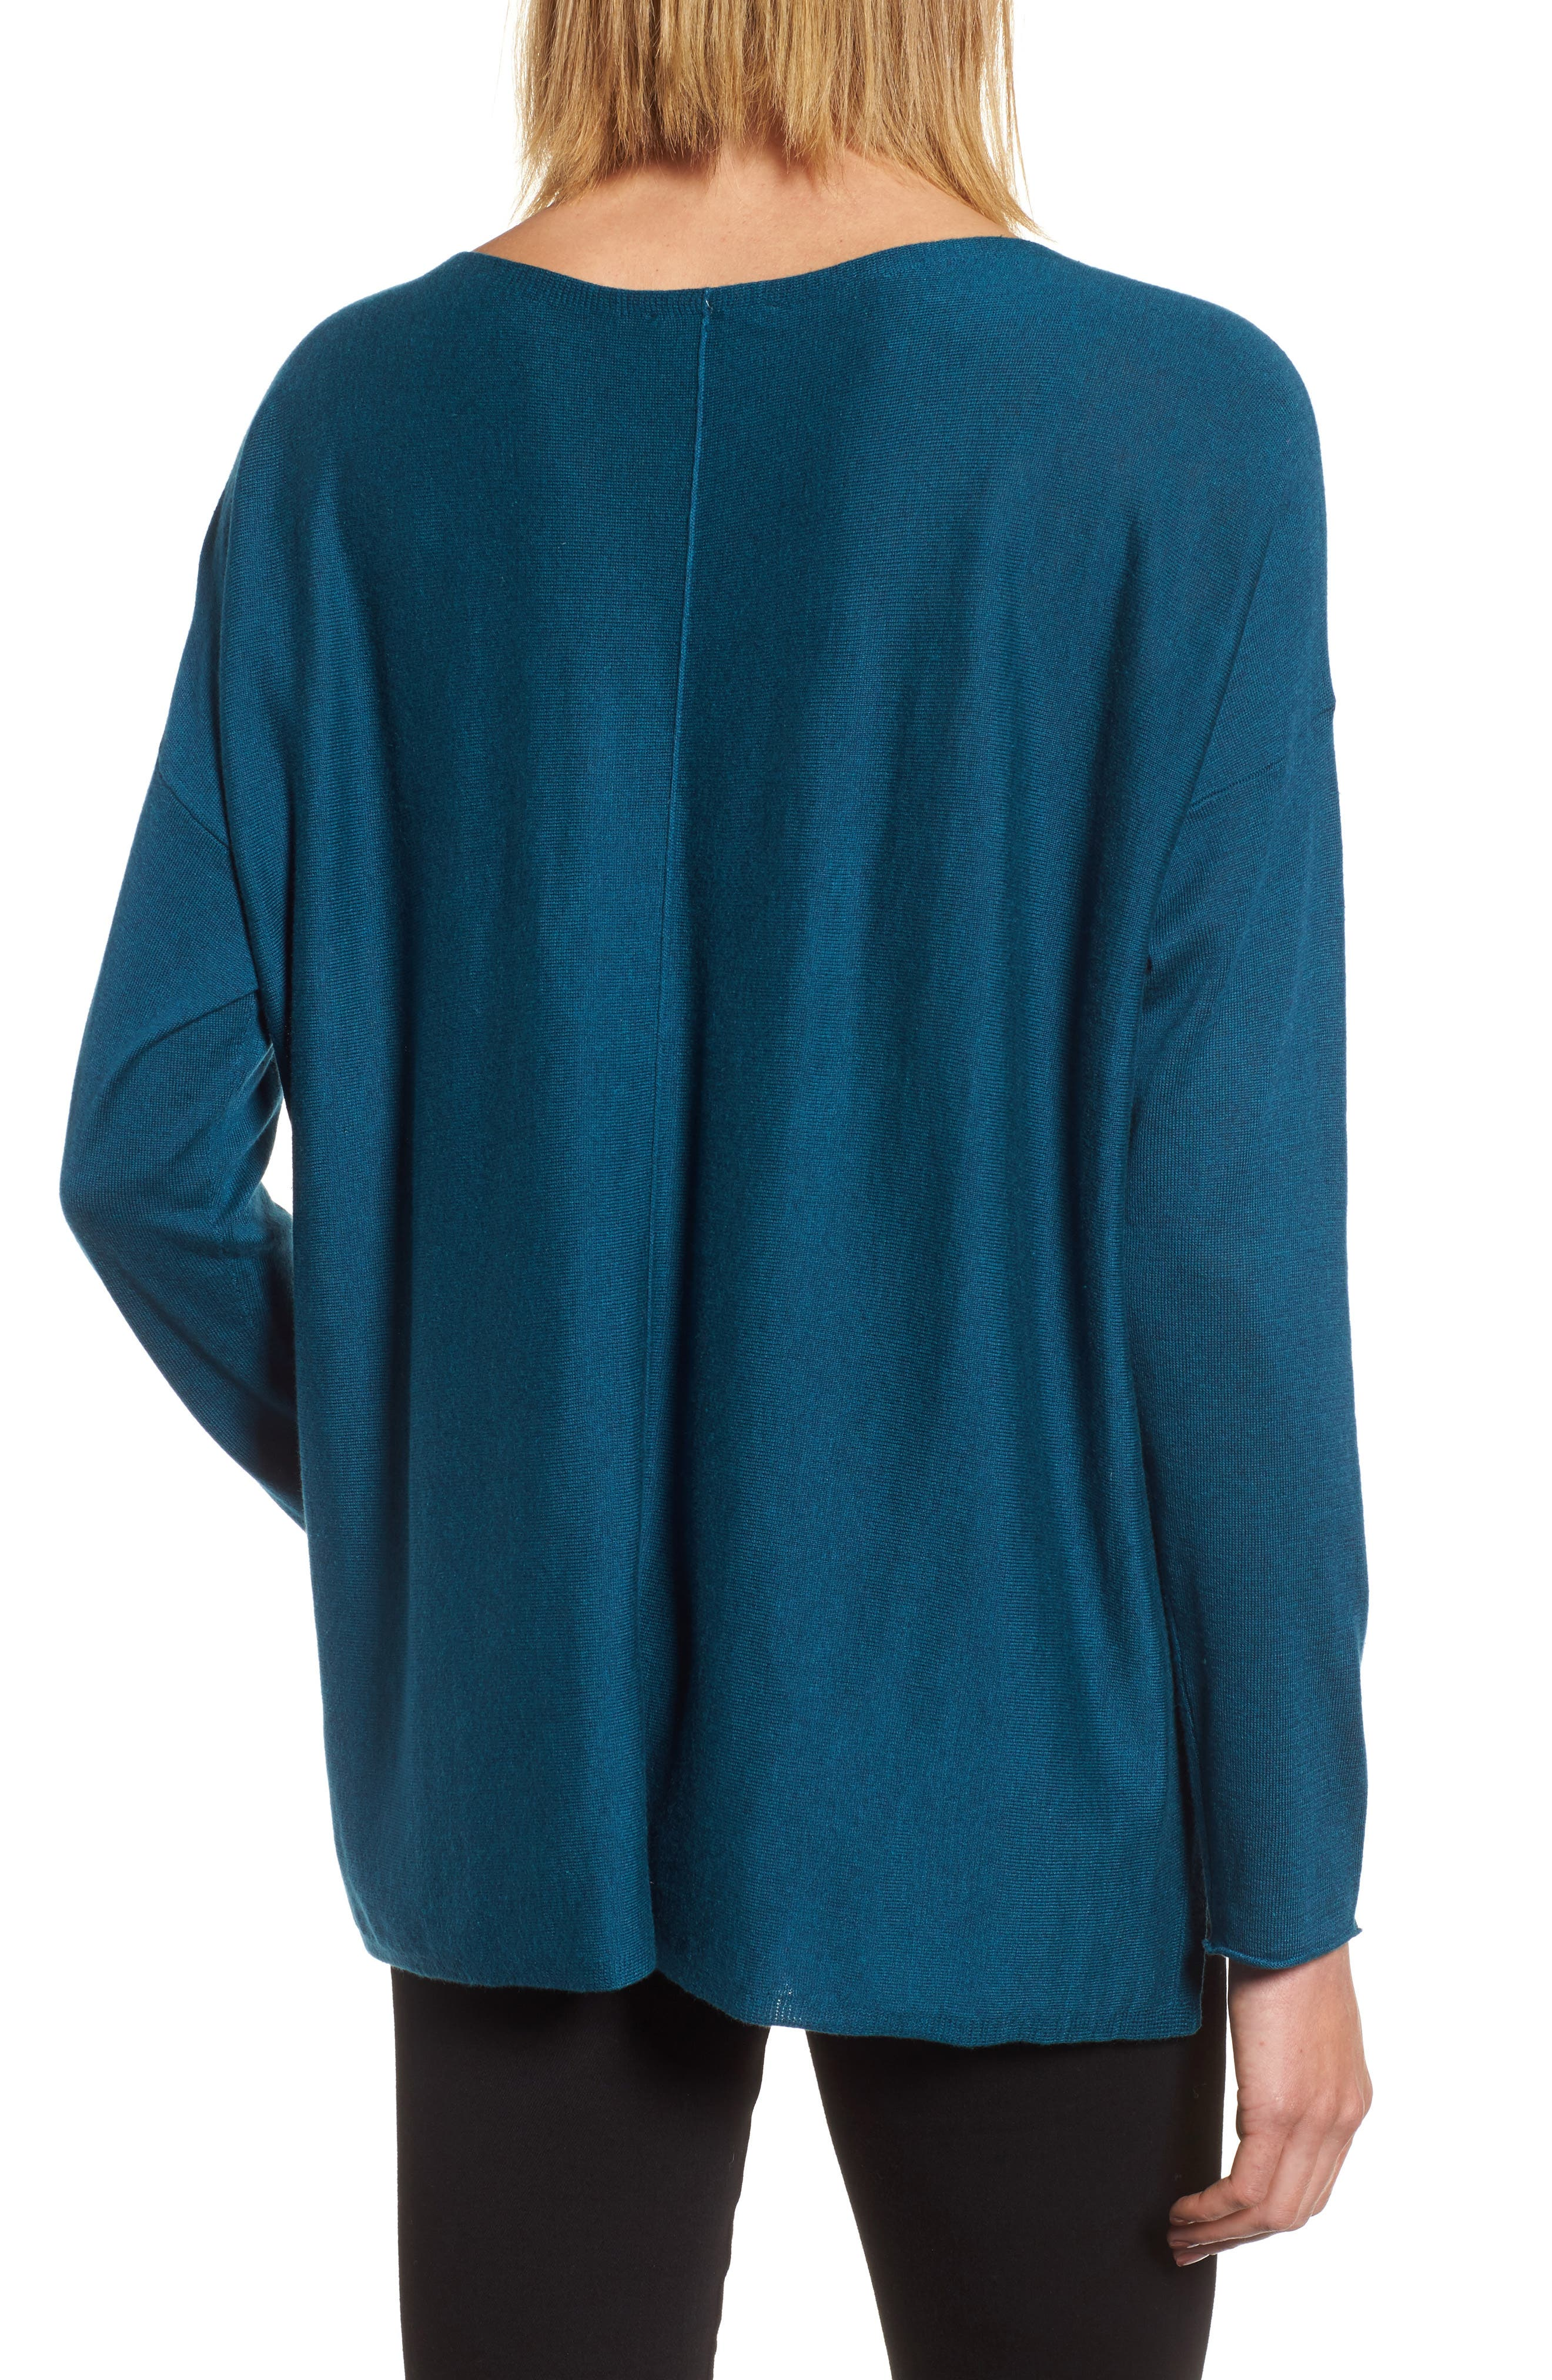 Tencel<sup>®</sup> Lyocell Blend High/Low Sweater,                             Alternate thumbnail 2, color,                             Blue Spruce